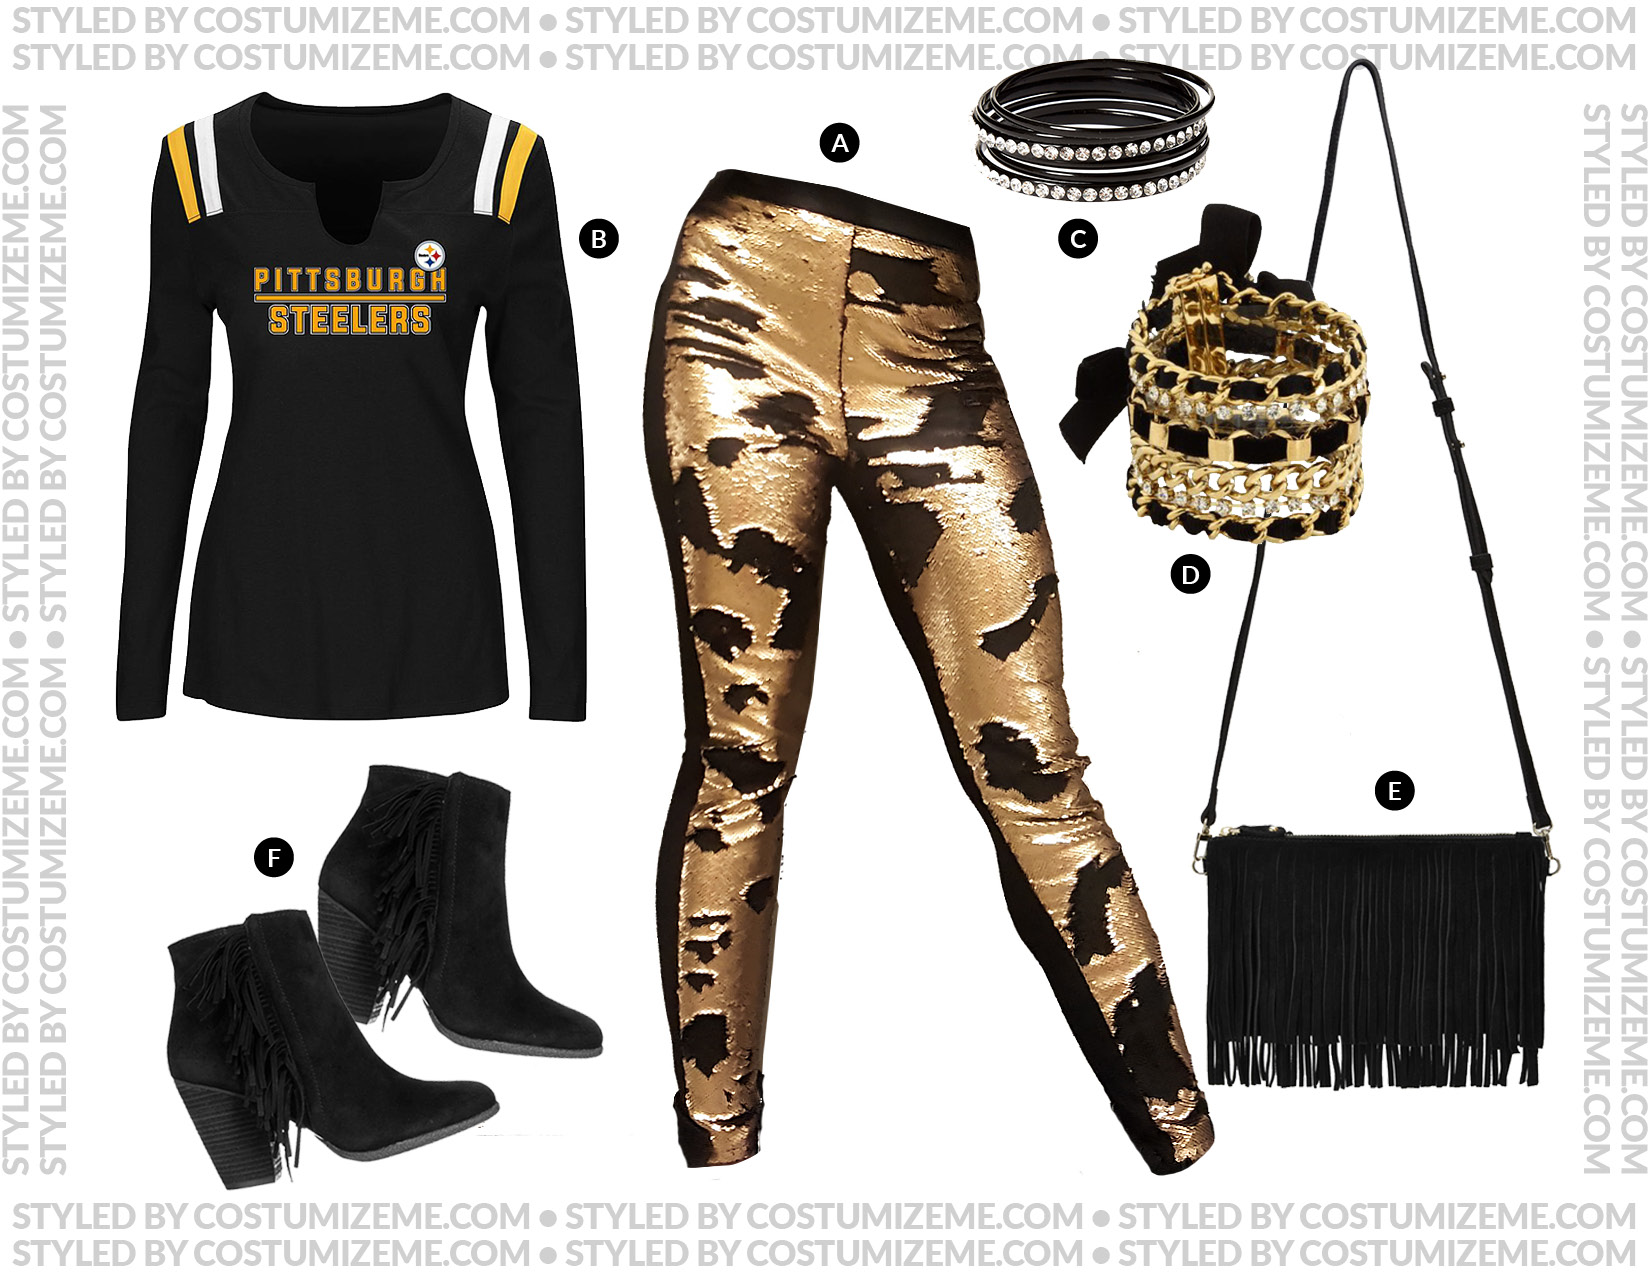 Pittsburgh Steelers Game Day Fan Fashion Outfit